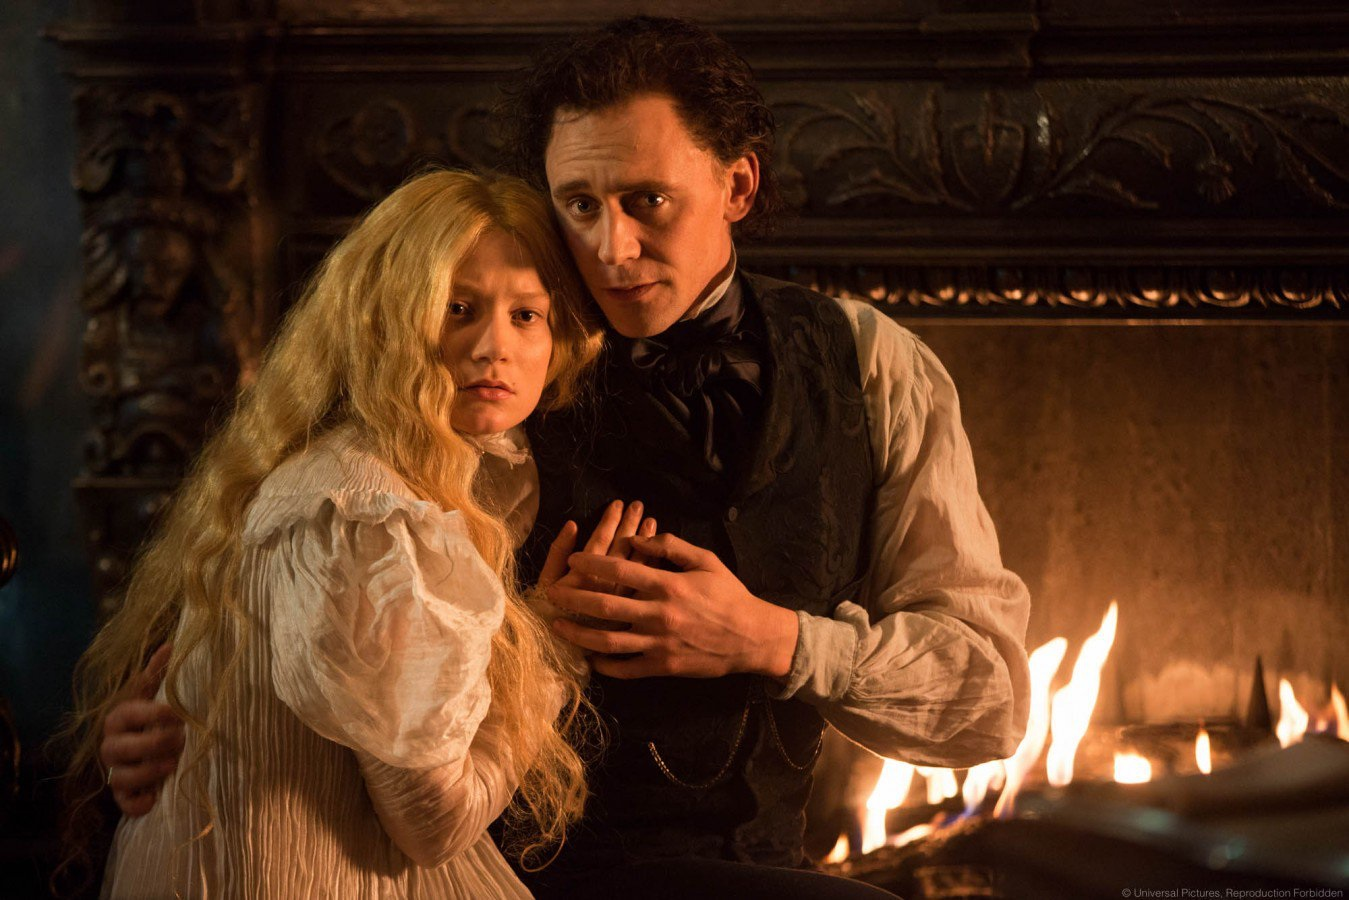 Mia Wasikowska and Tom Hiddleston in Crimson Peak (2015)